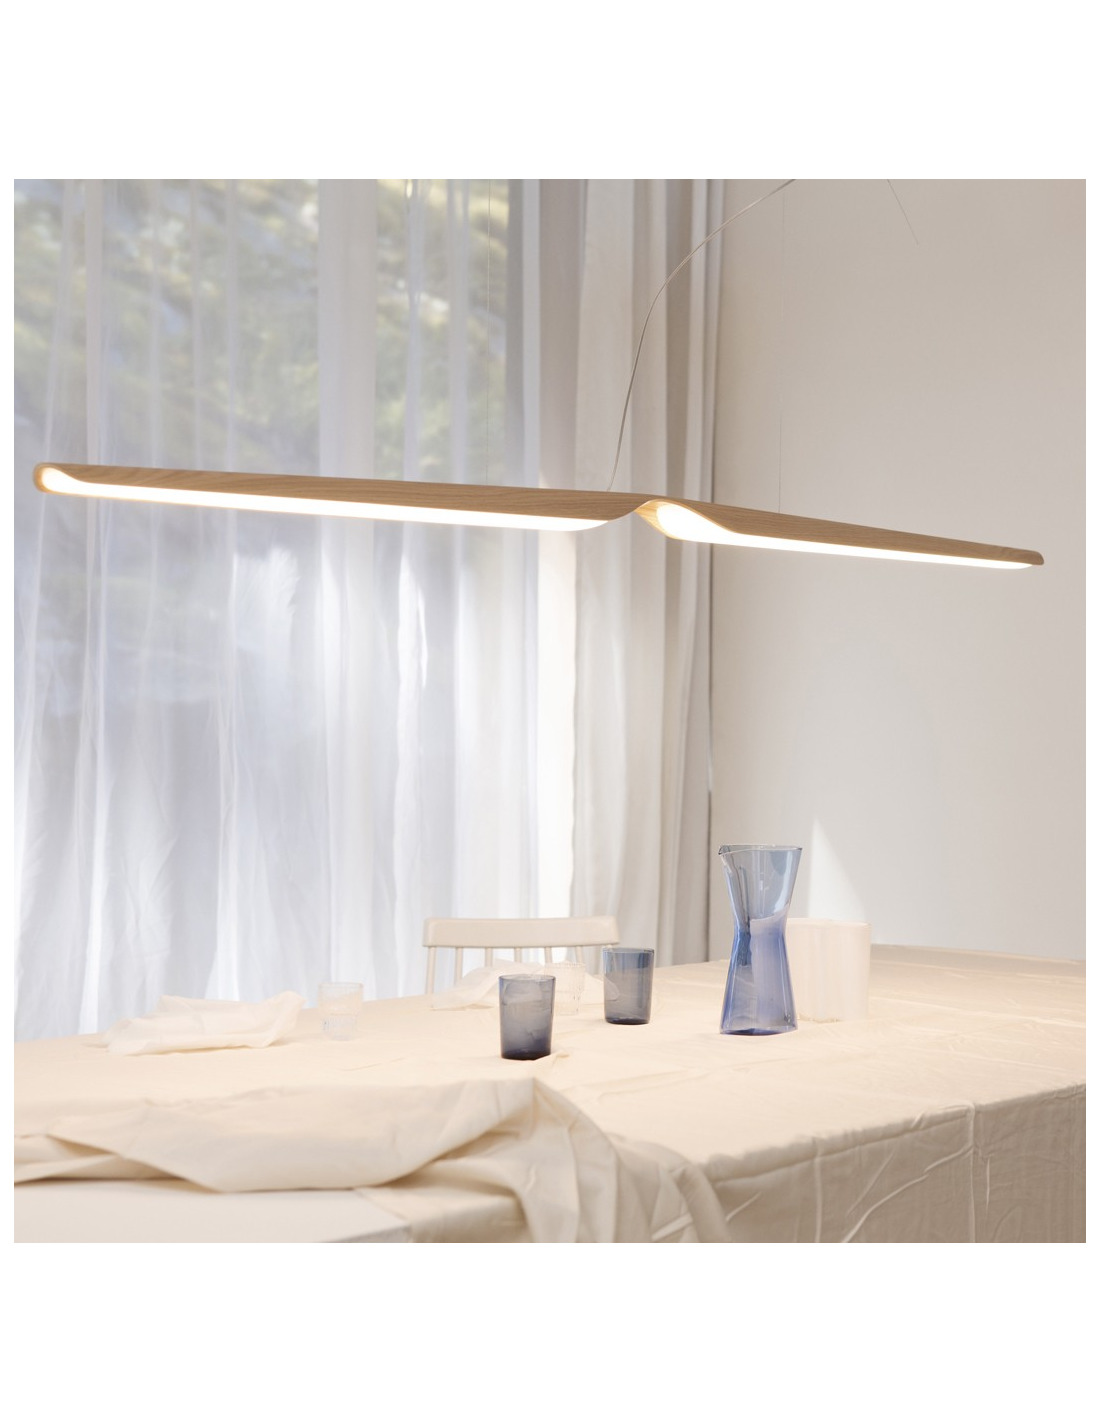 Suspension Design En Bois Led Swan Au Design Scandinave Et Minimaliste Otoko